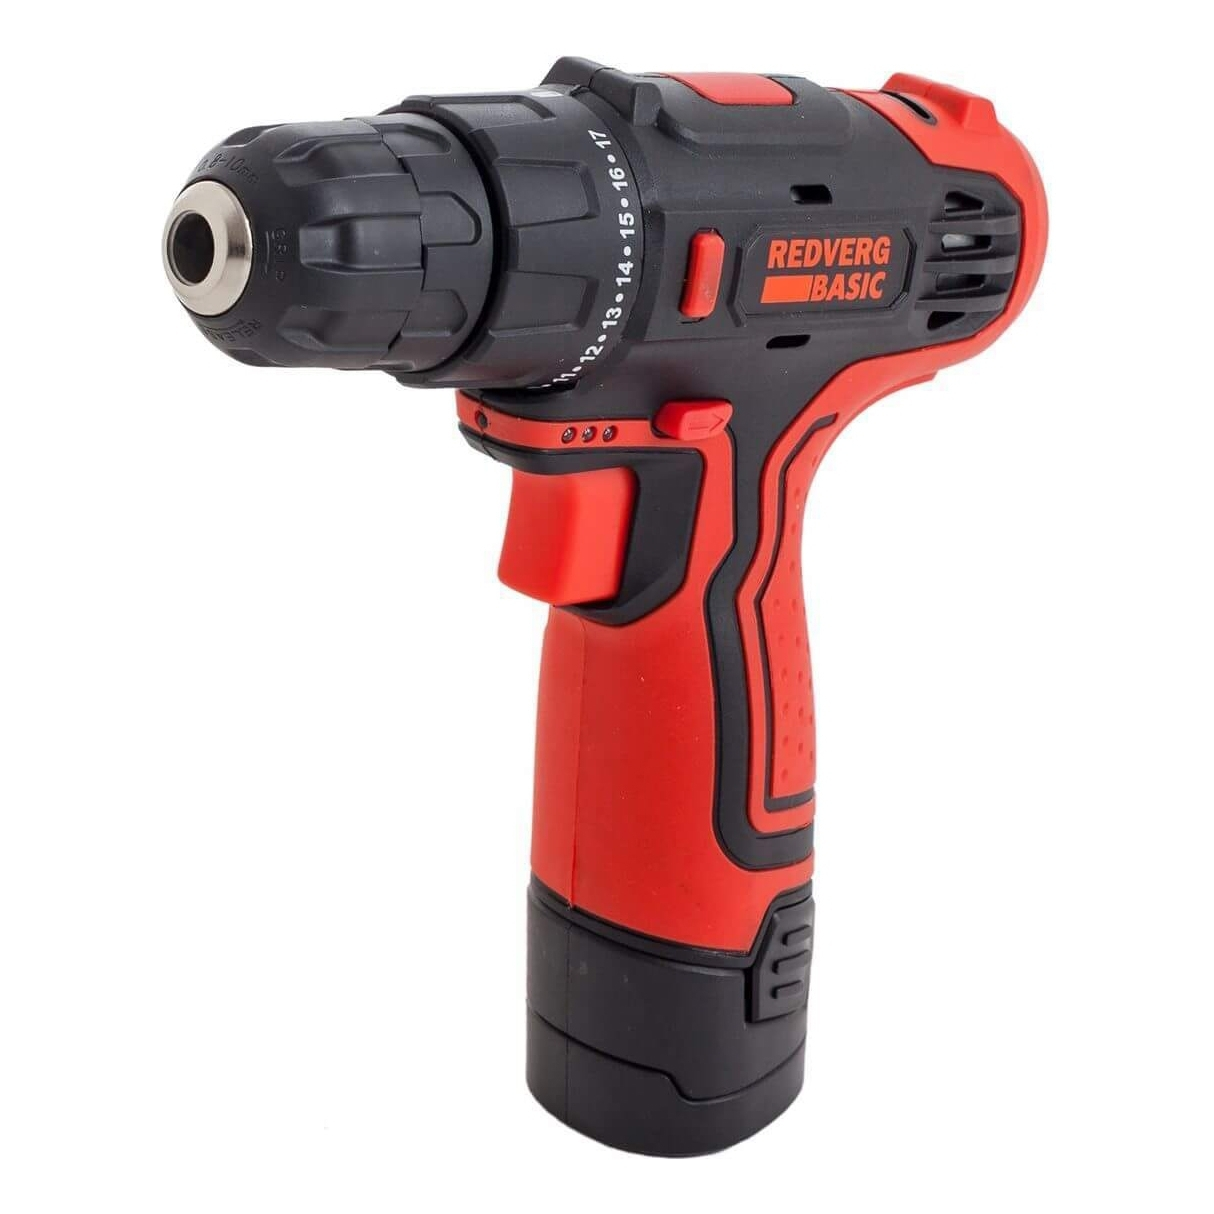 Фото - Drill electric screwdriver rechargeable RedVerg Basic SD10L/1 (Light work area, indicator, reverse) free shipping au us type touch glass light switches 1 gang 1 way ac 110 240v electric wall switch with blue led indicator